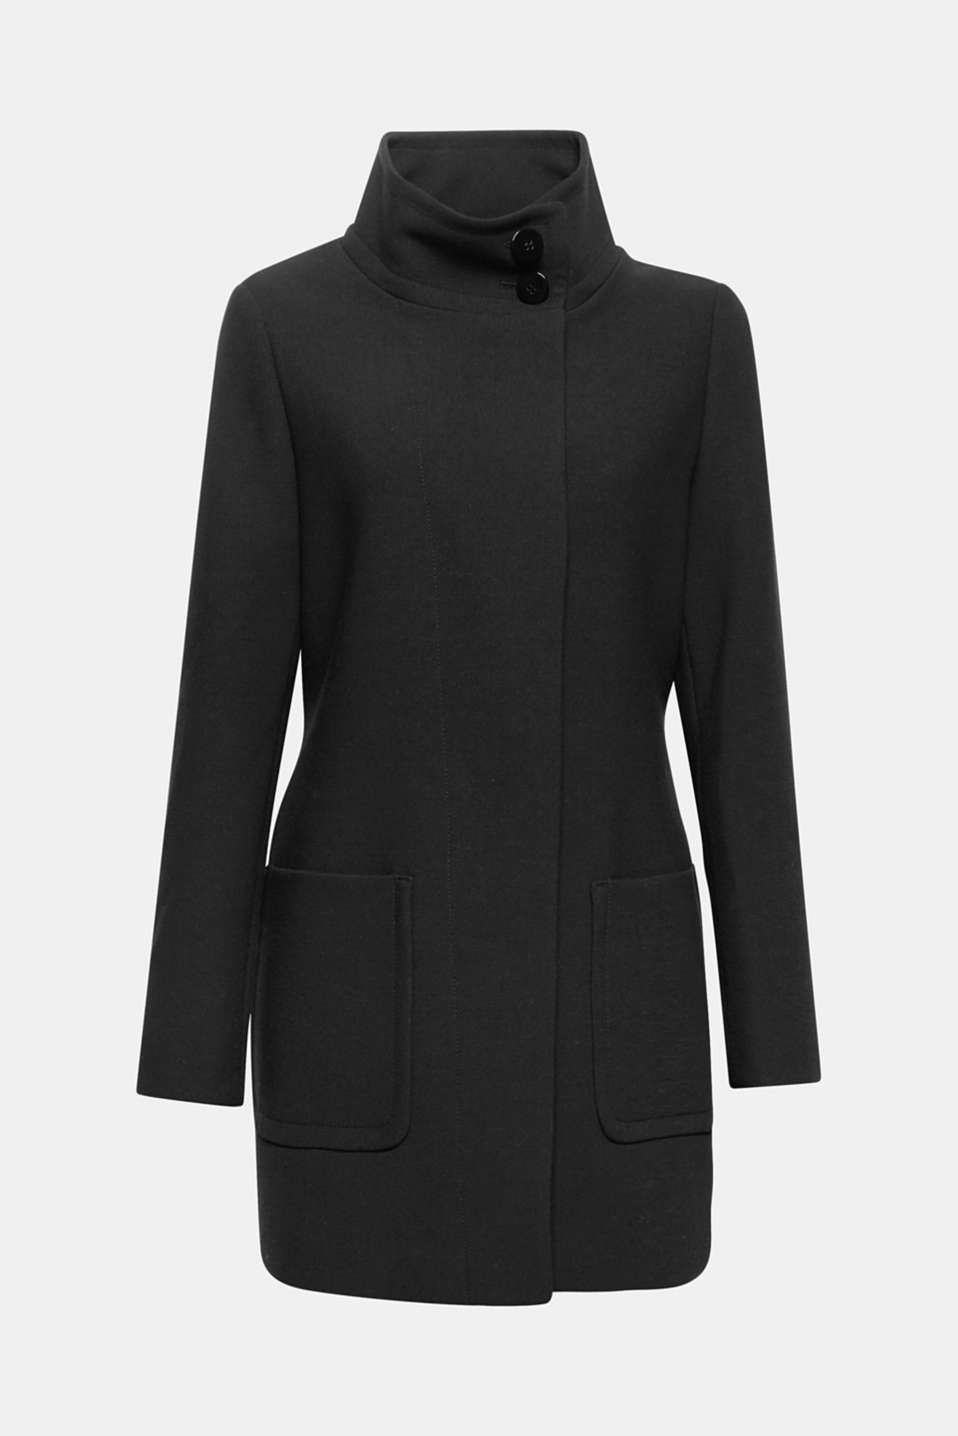 The loose-fitting stand-up collar, concealed and slightly asymmetric button placket and textured fabric make this between-seasons coat a modern all-rounder for lots of different occasions!